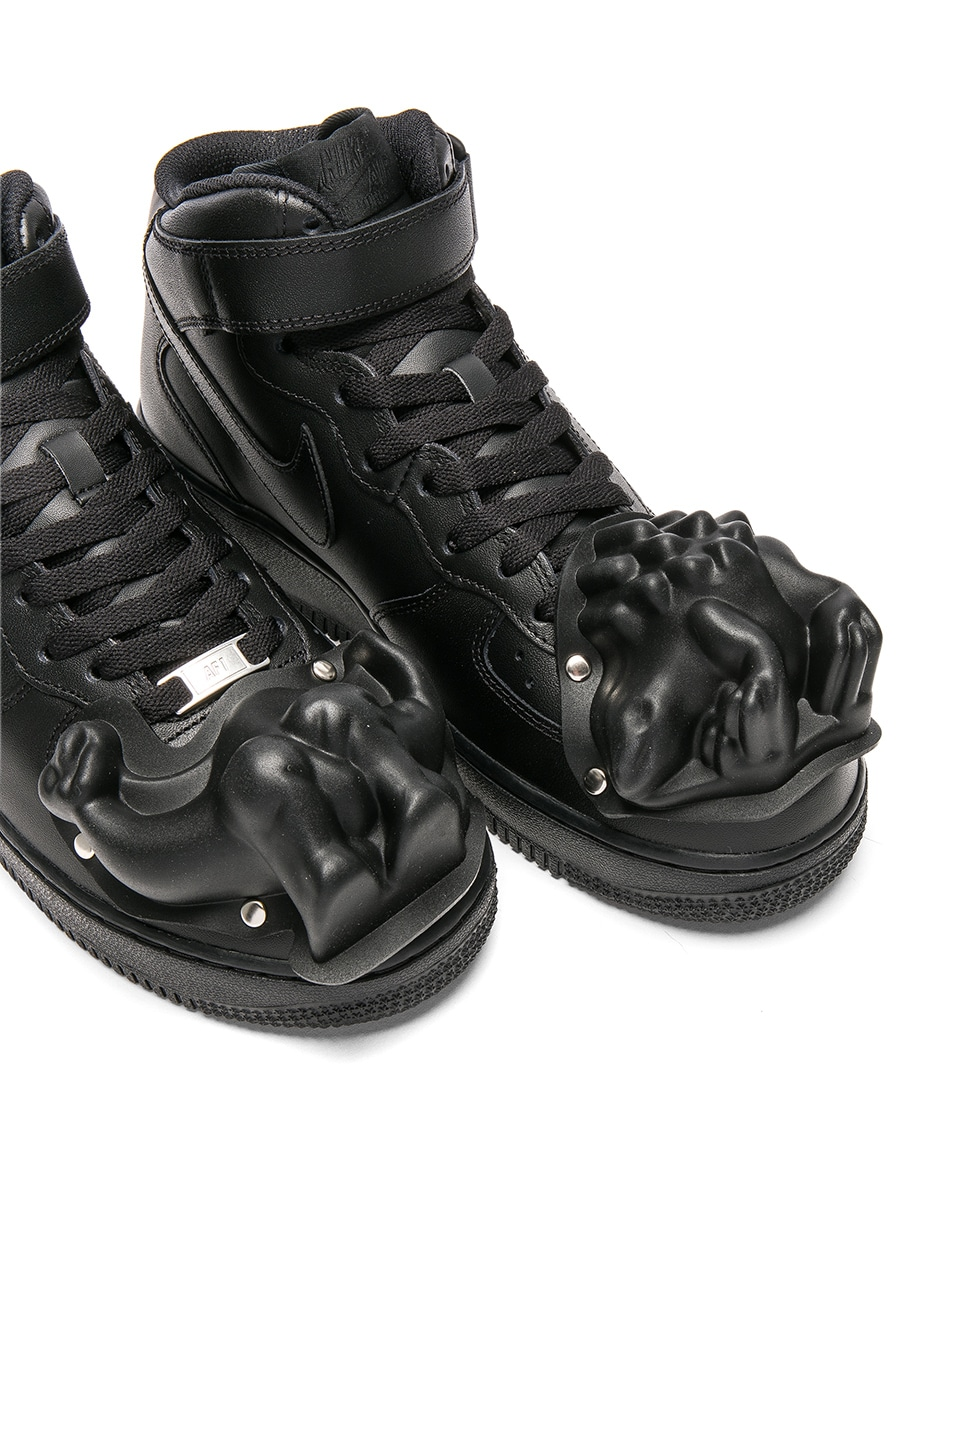 newest c3793 a5e74 In Cdg Black Garcons 1 Plus Nike Air Des Force Comme Custom Homme 71qvvP. «